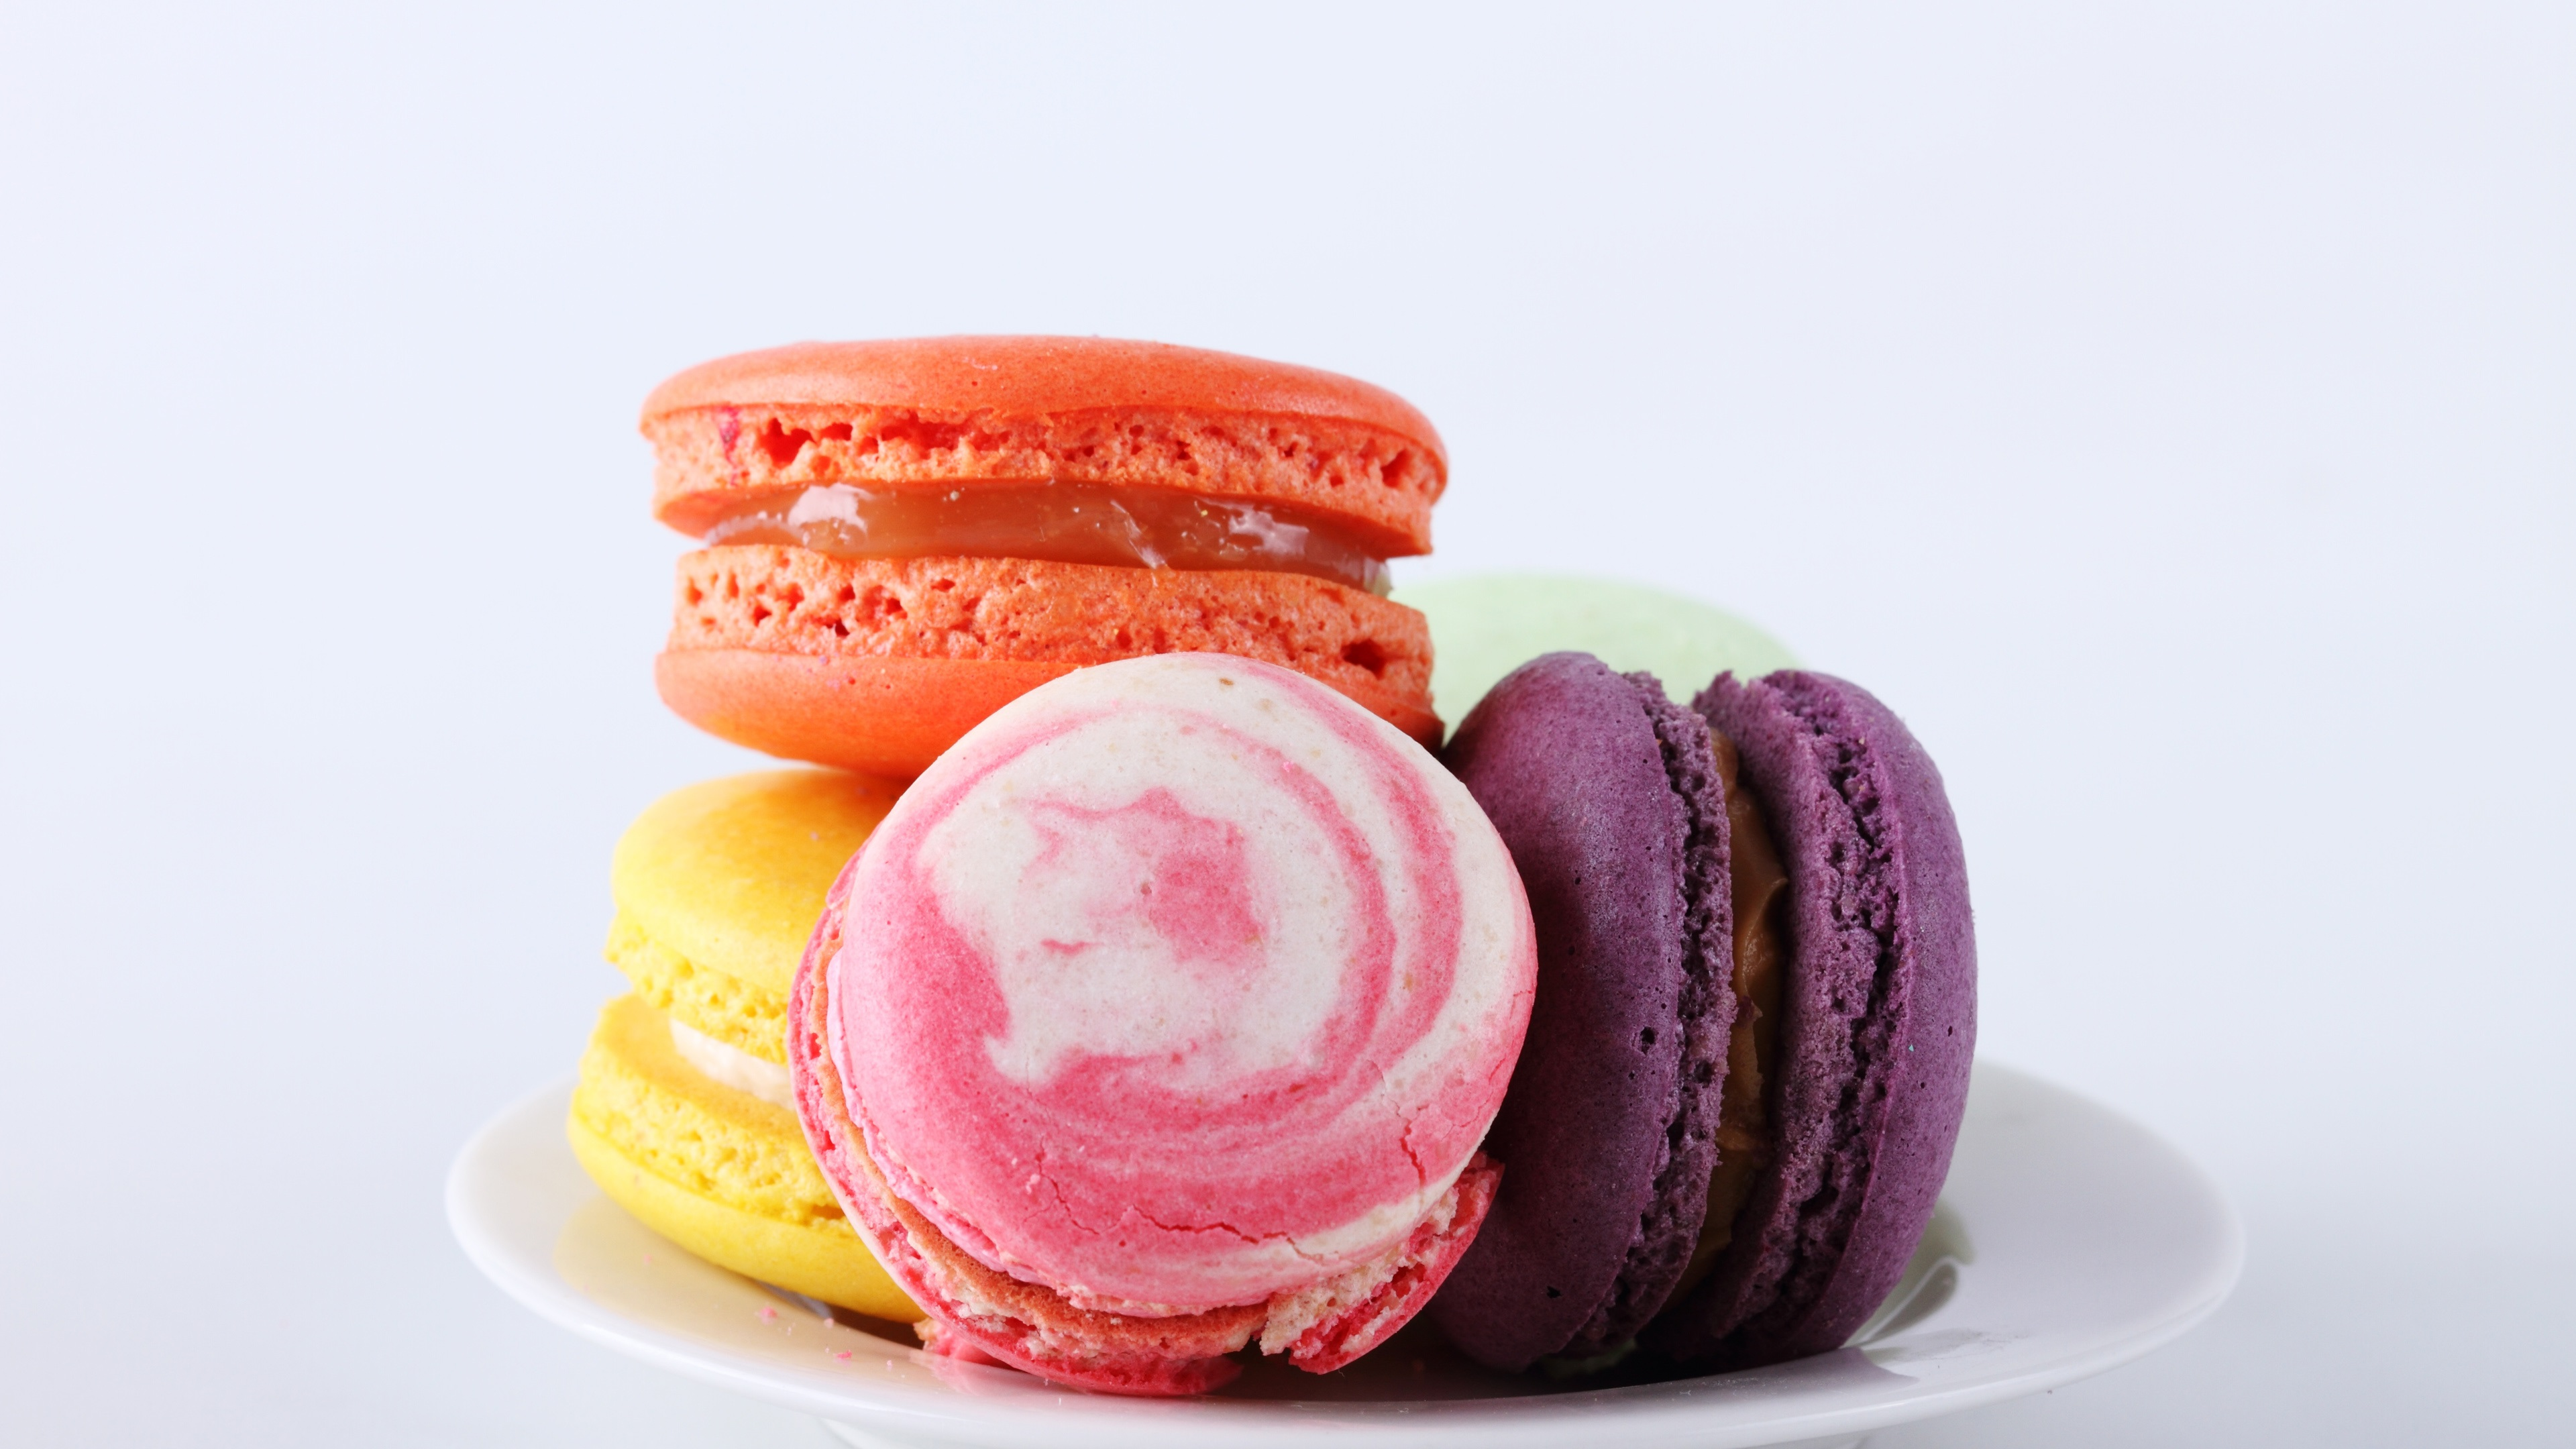 Cute Macaroons Wallpaper Wallpaper Macaron Almond Cookies Colorful Dessert